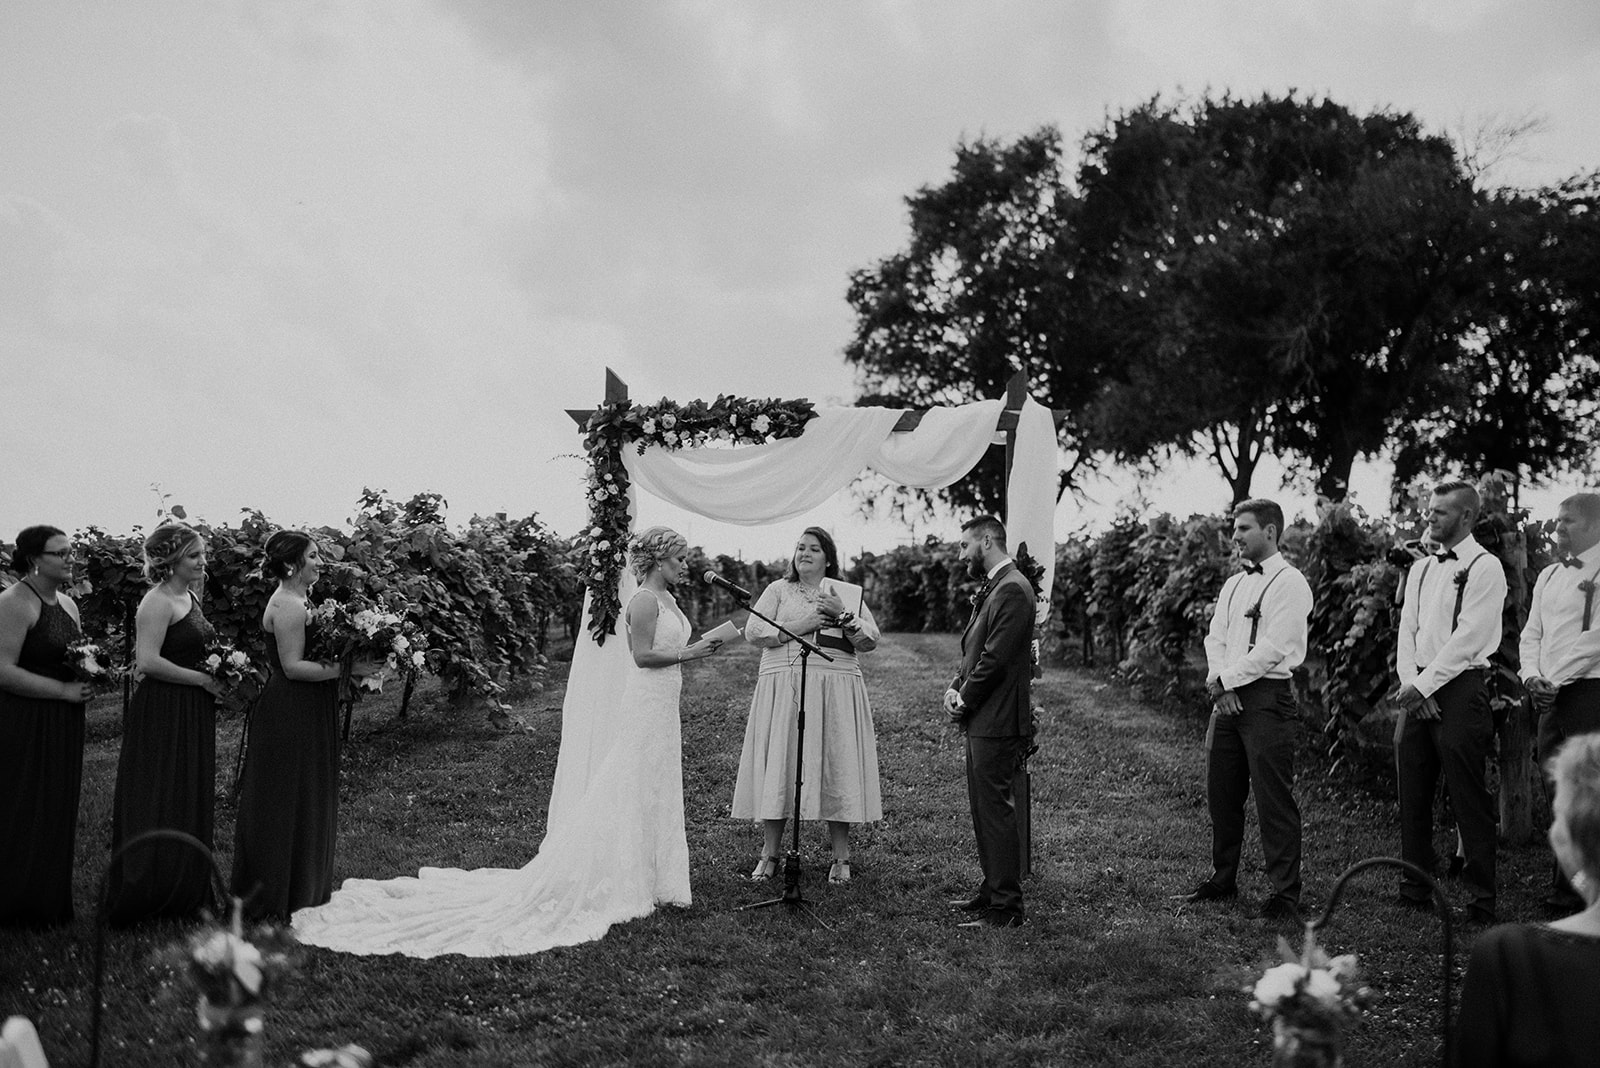 overthevineswisconsinwedding_0651.jpg